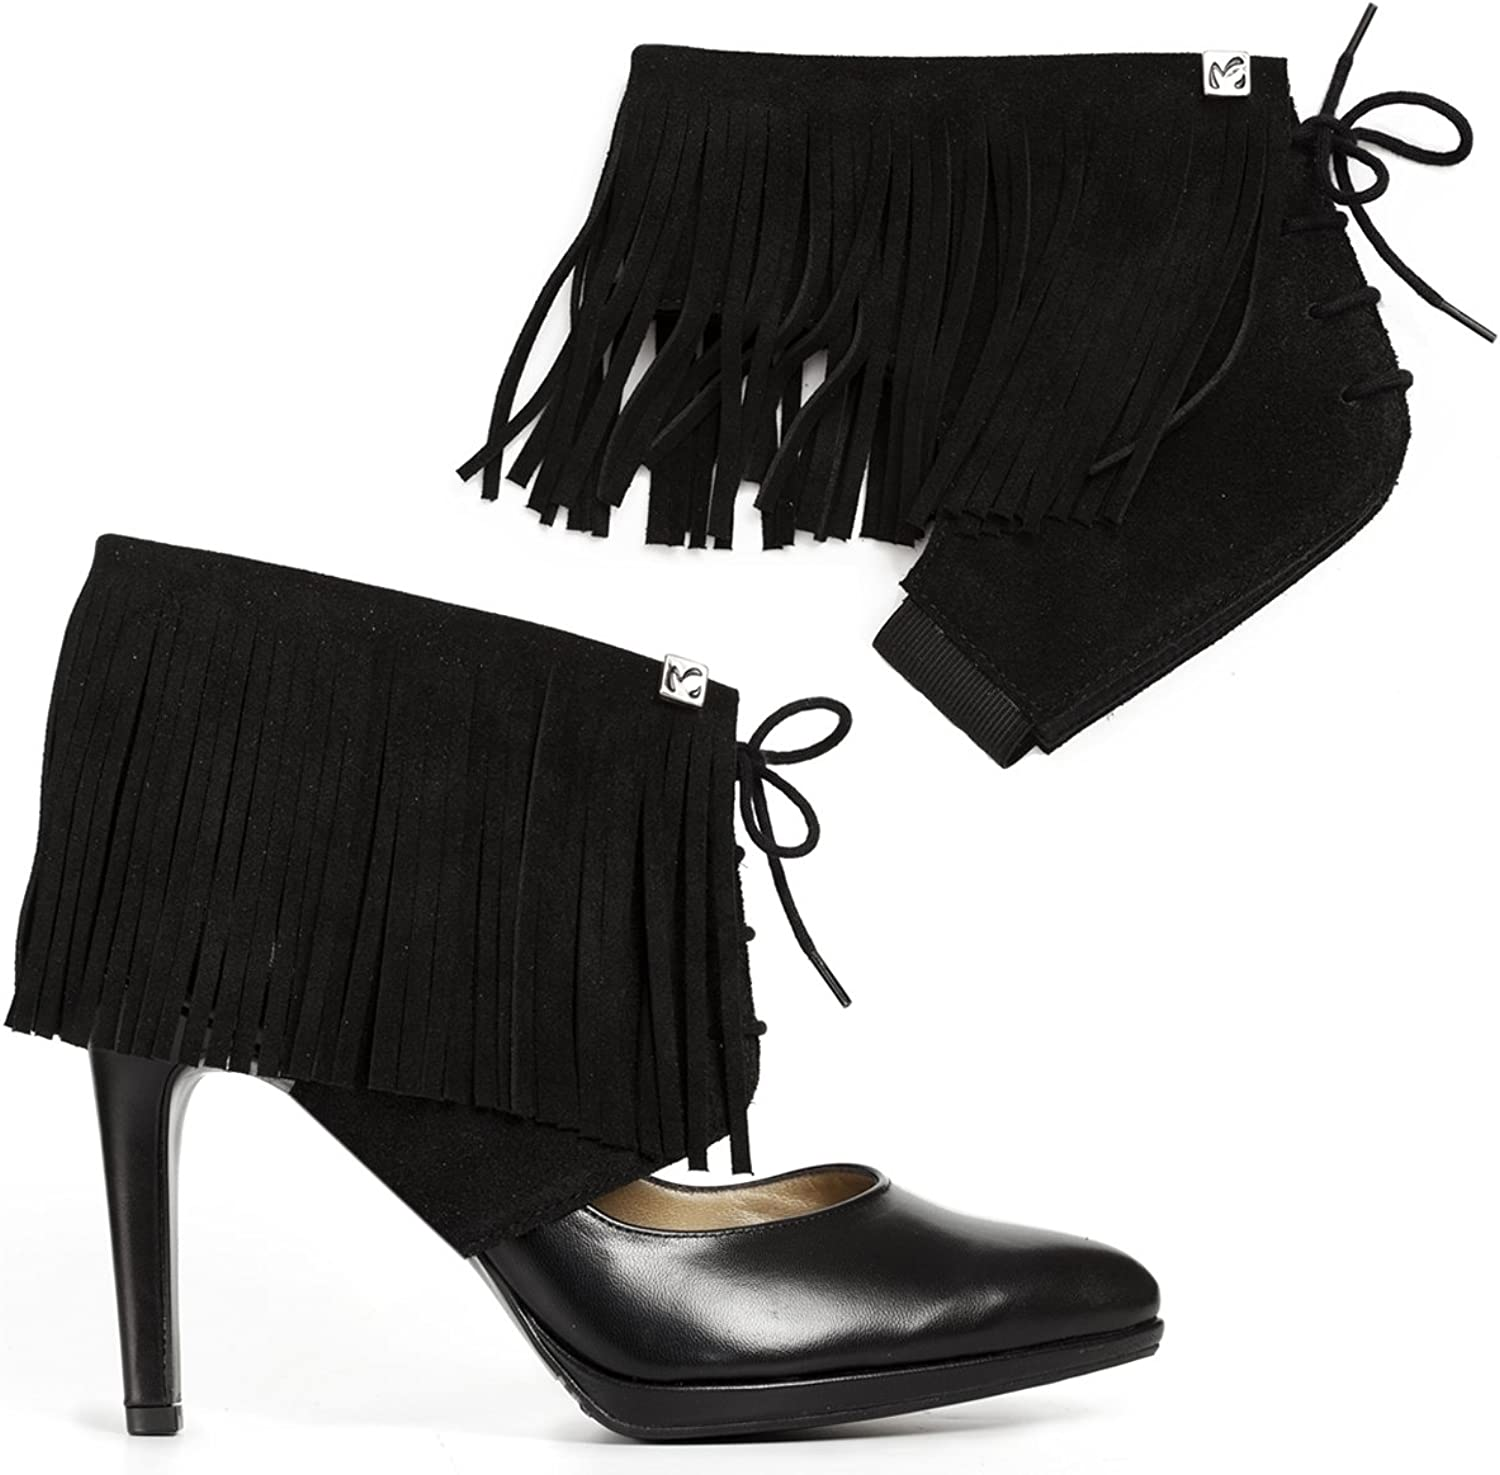 Molinis Fringe shoes Accessories Transform Your Pumps Into Ankle Boots and Walk Comfortable in Heels. Suede Leather, (Size S,M,L, Available in More colors)